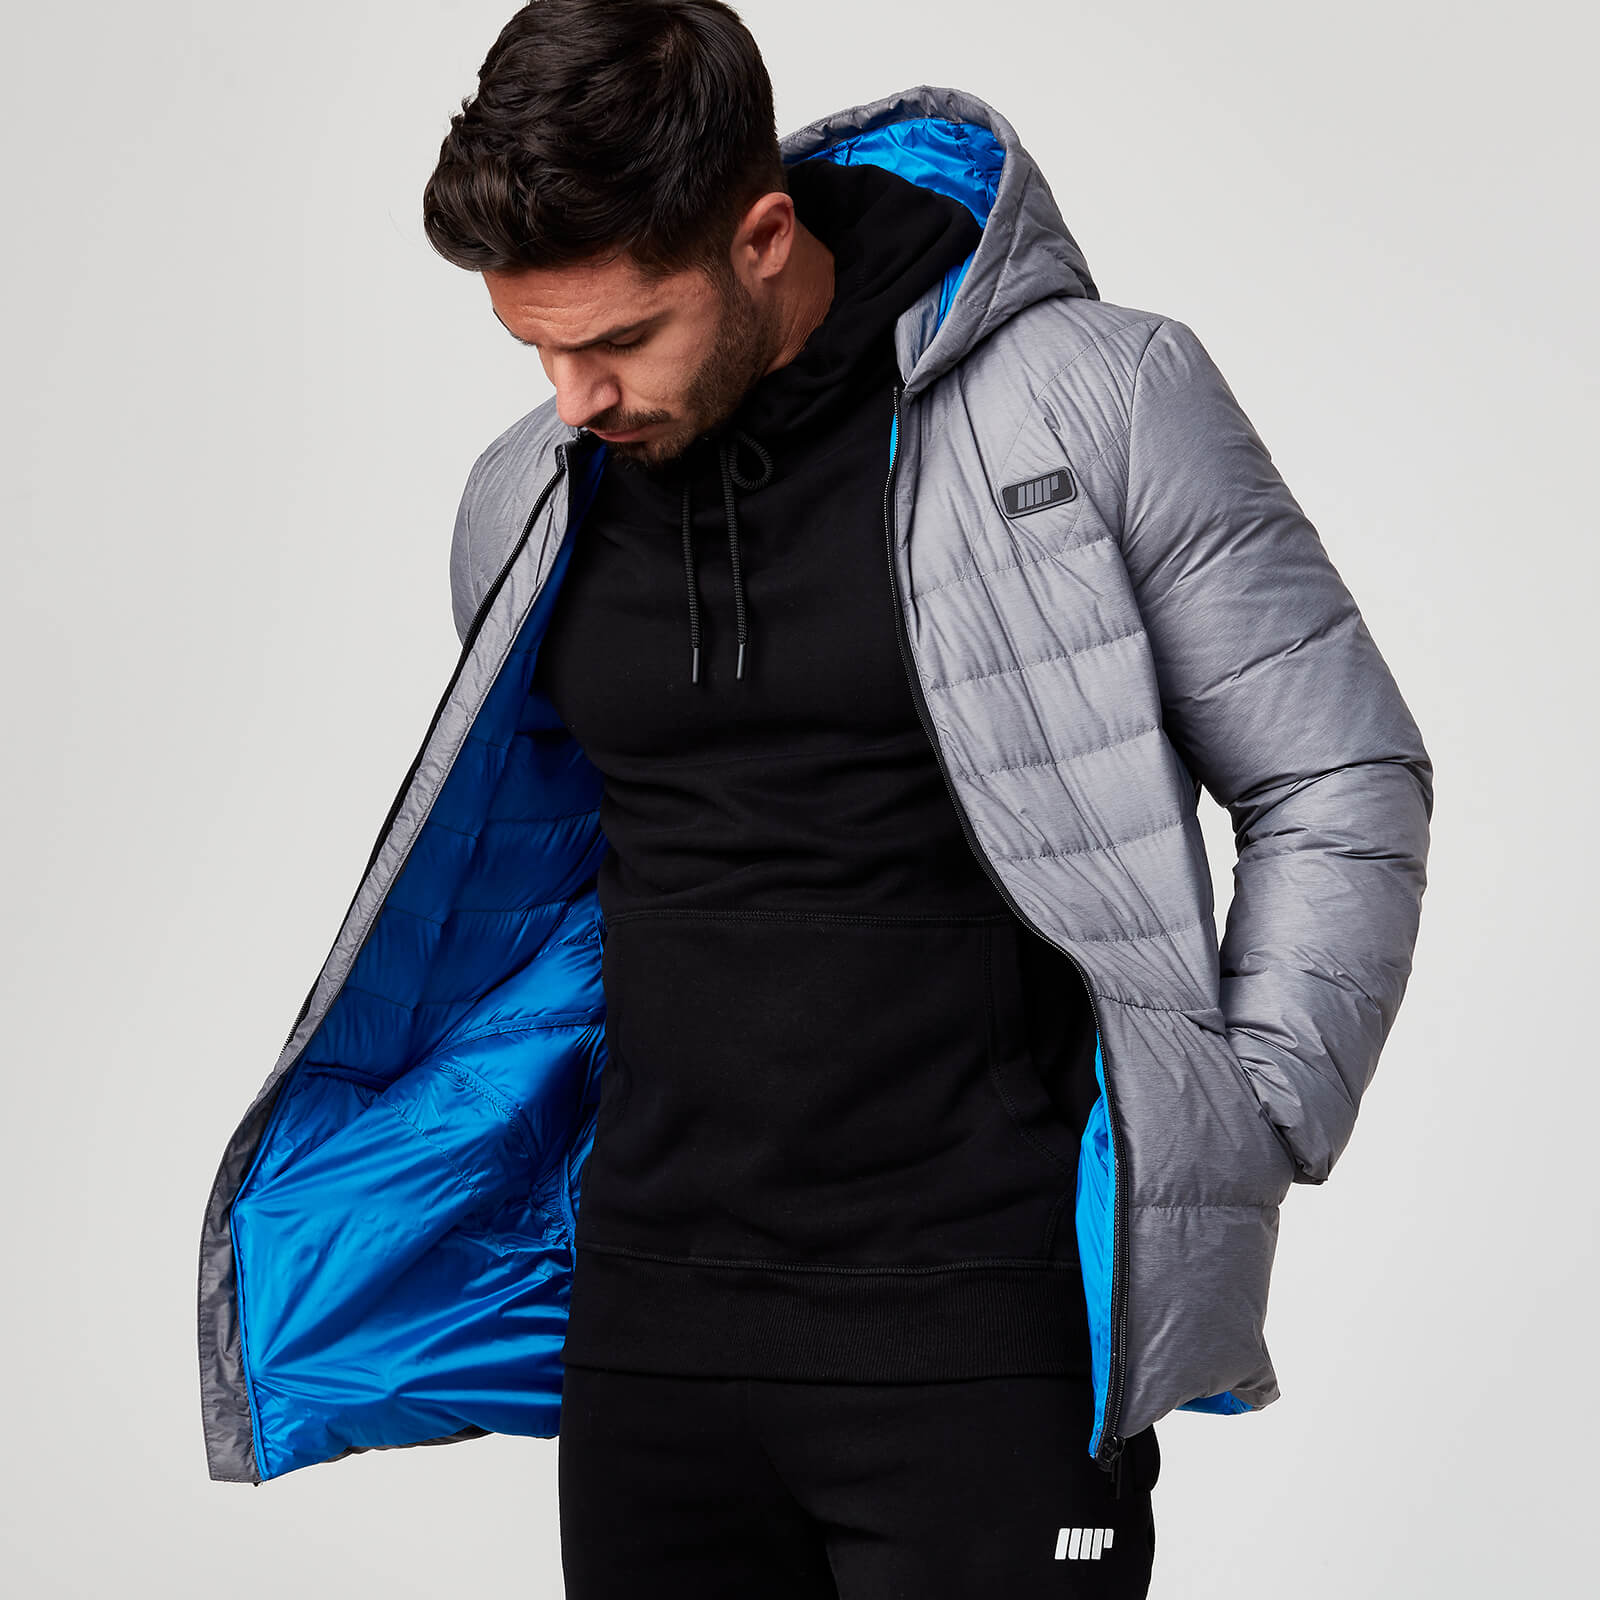 Myprotein Pro Tech Heavyweight Puffer - Grey - S